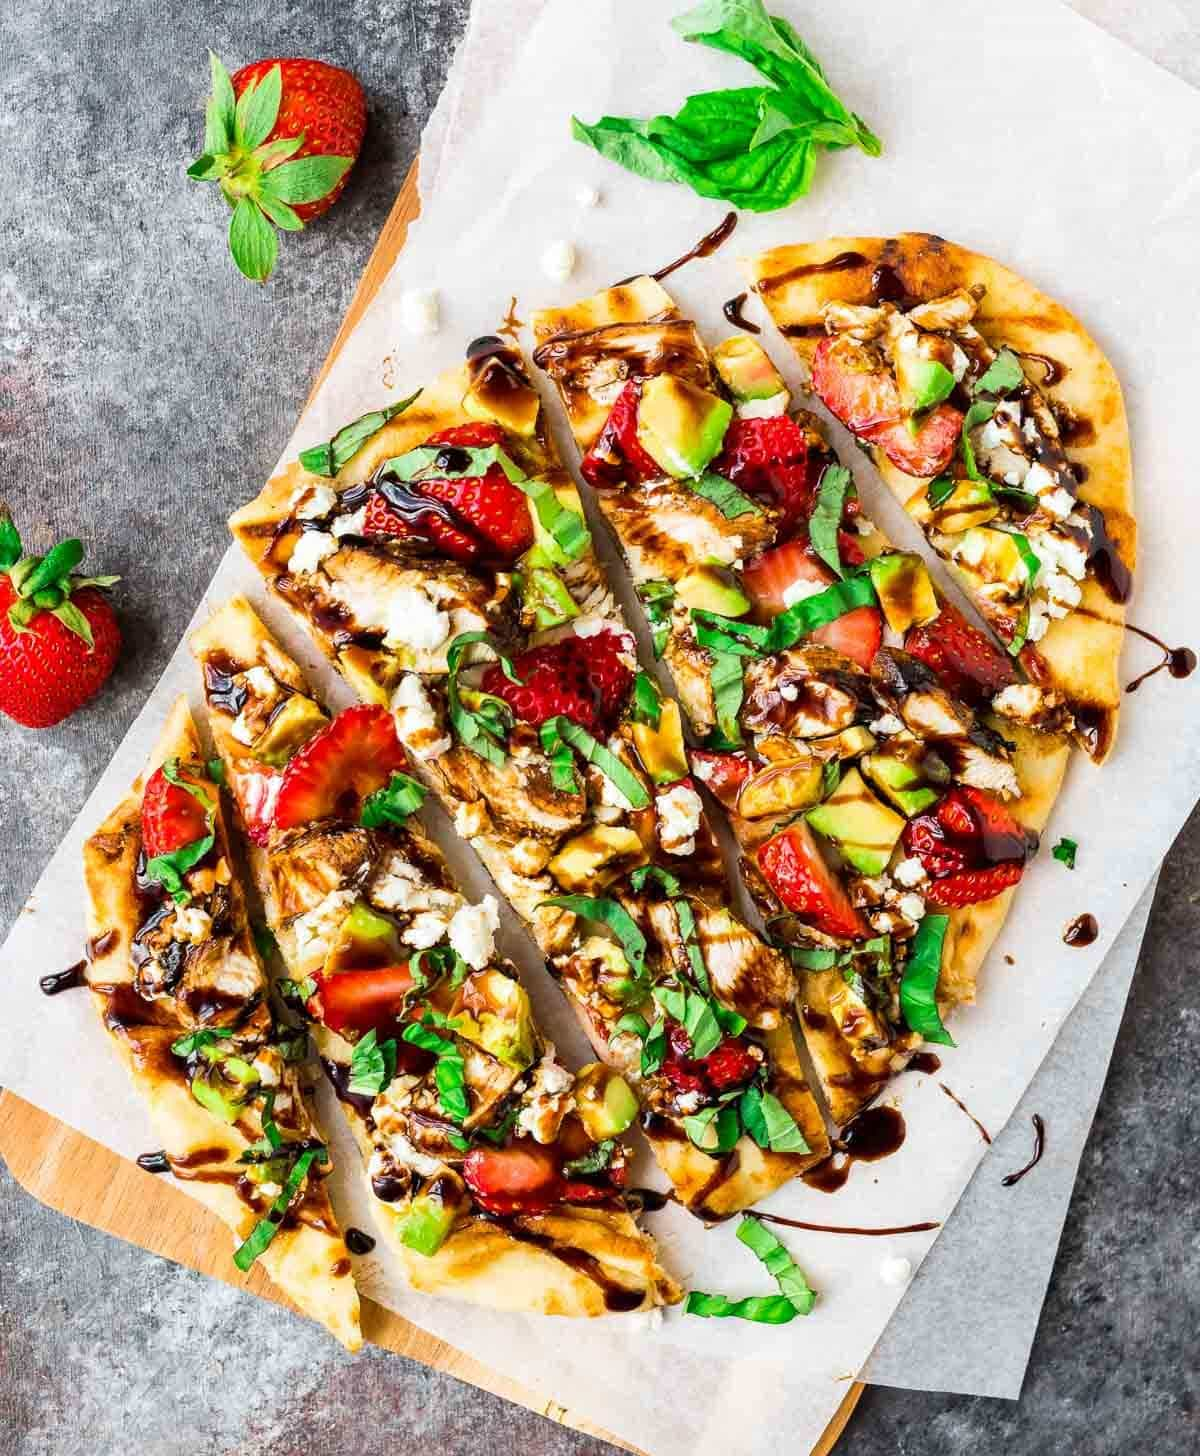 Easy Grilled Naan Pizza with Strawberry, Avocado, Balsamic Chicken, and Goat Cheese. The perfect light summer meal! Naan flatbread makes this recipe super quick and easy and the combination of flavors is AMAZING. Recipe at wellplated.com | @wellplated